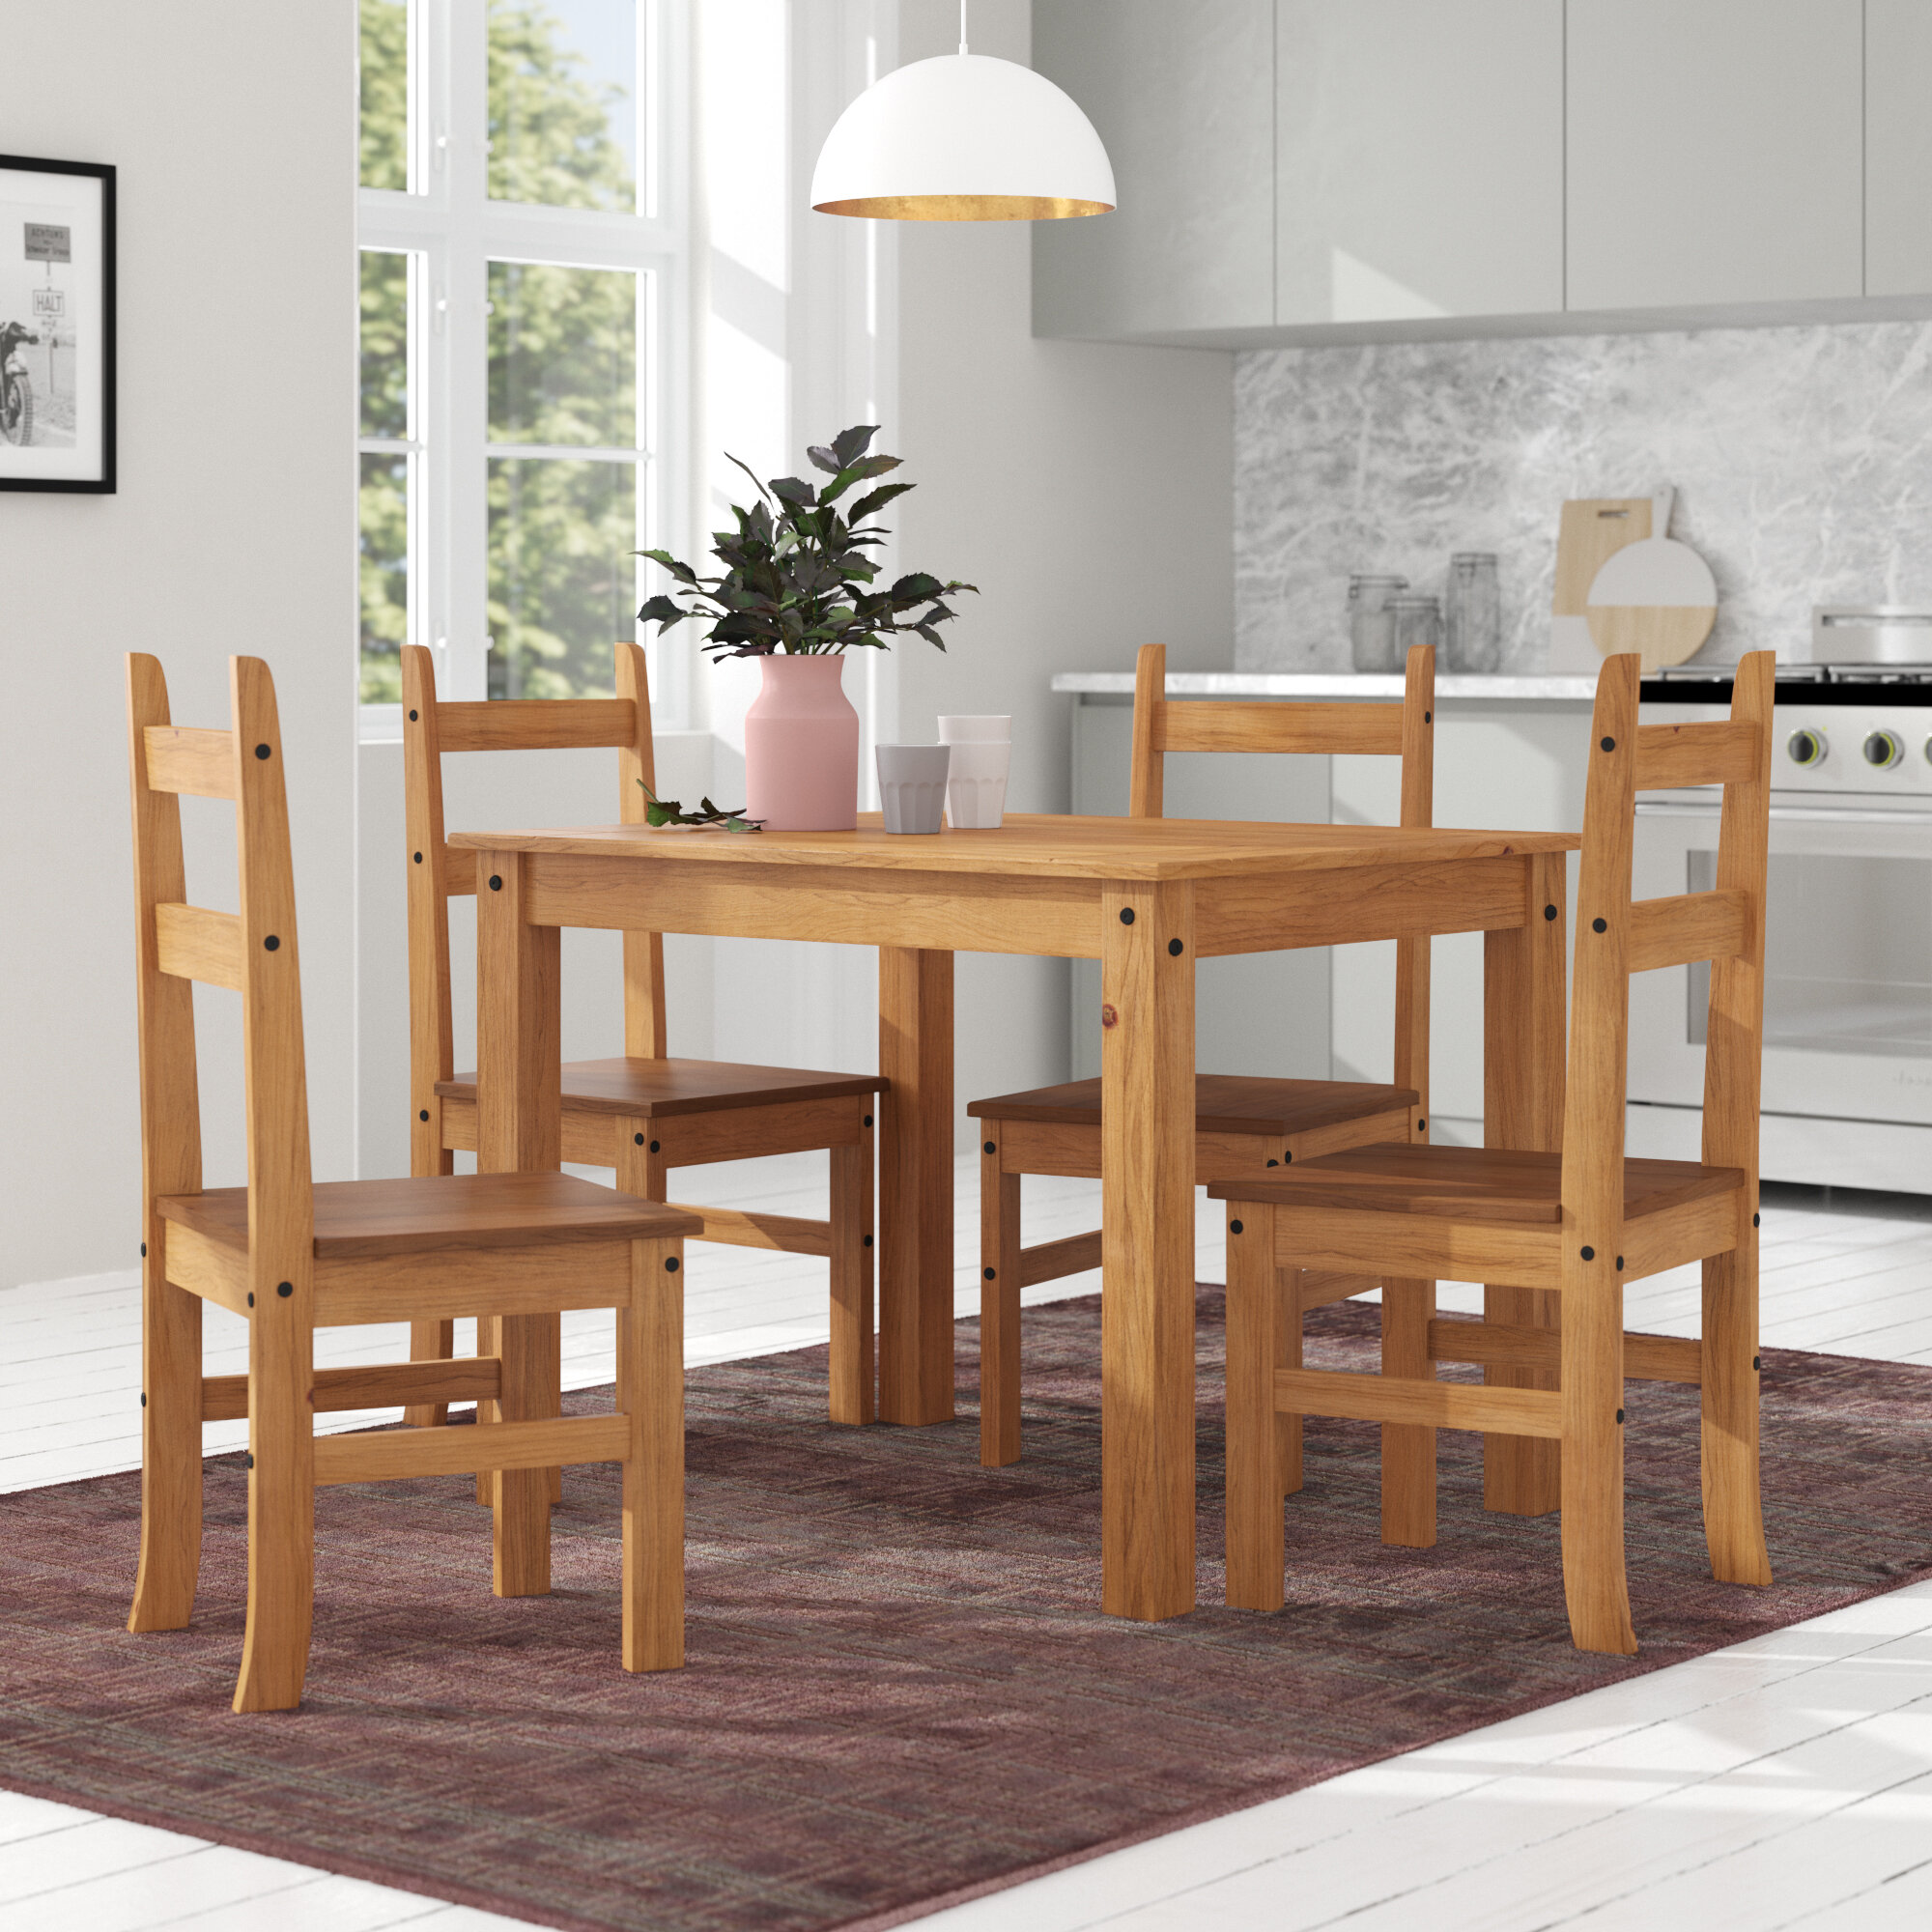 Fabulous Whipton Dining Table And 4 Chairs Download Free Architecture Designs Viewormadebymaigaardcom